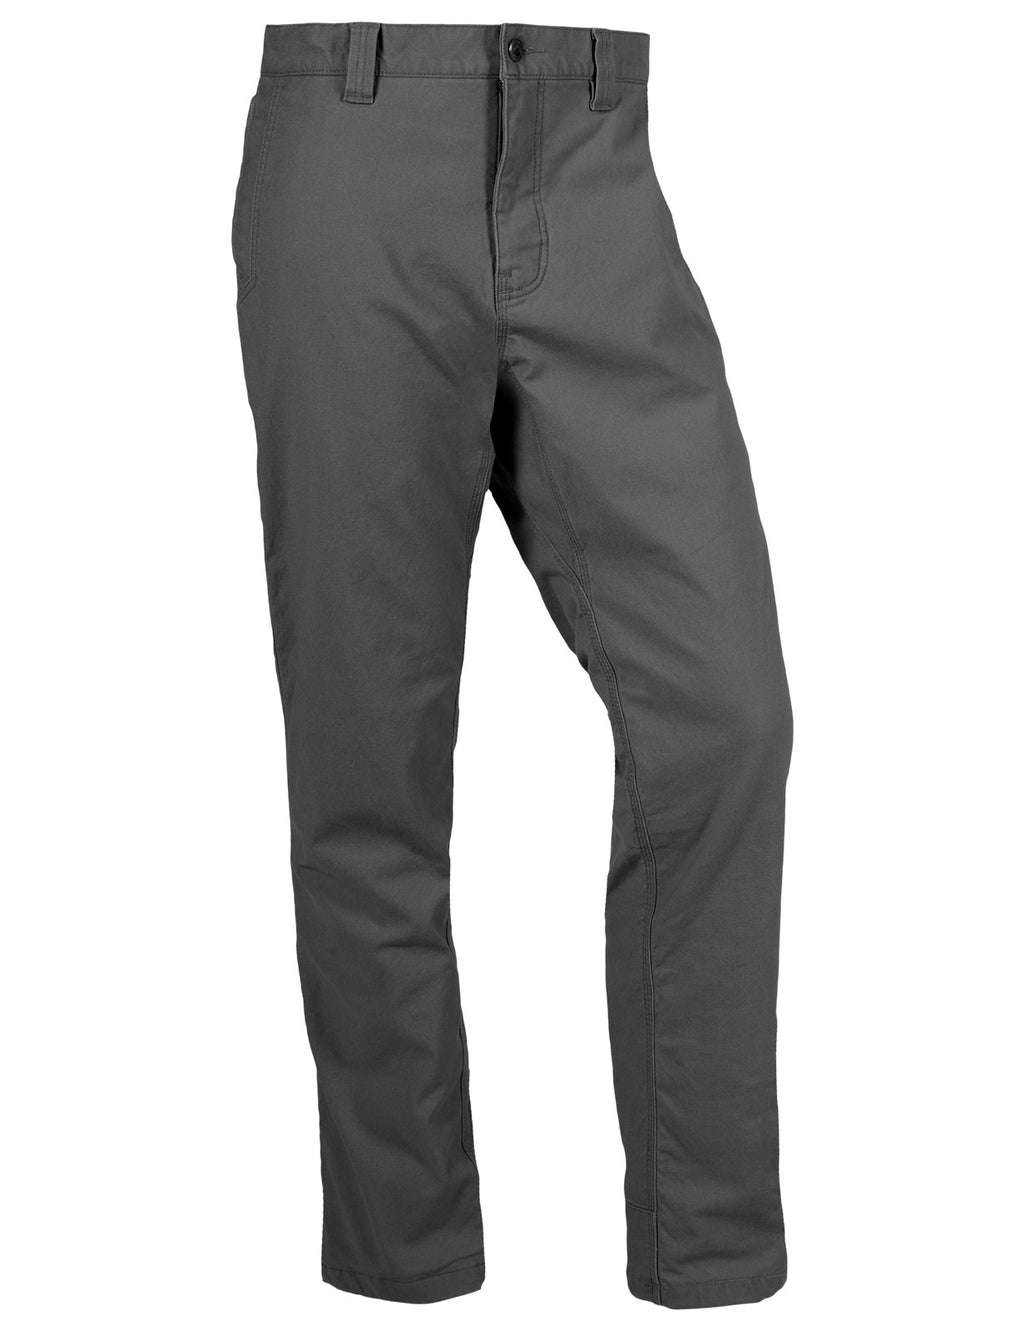 Front view of the Men's Mountain Pant in Jackson Grey color.